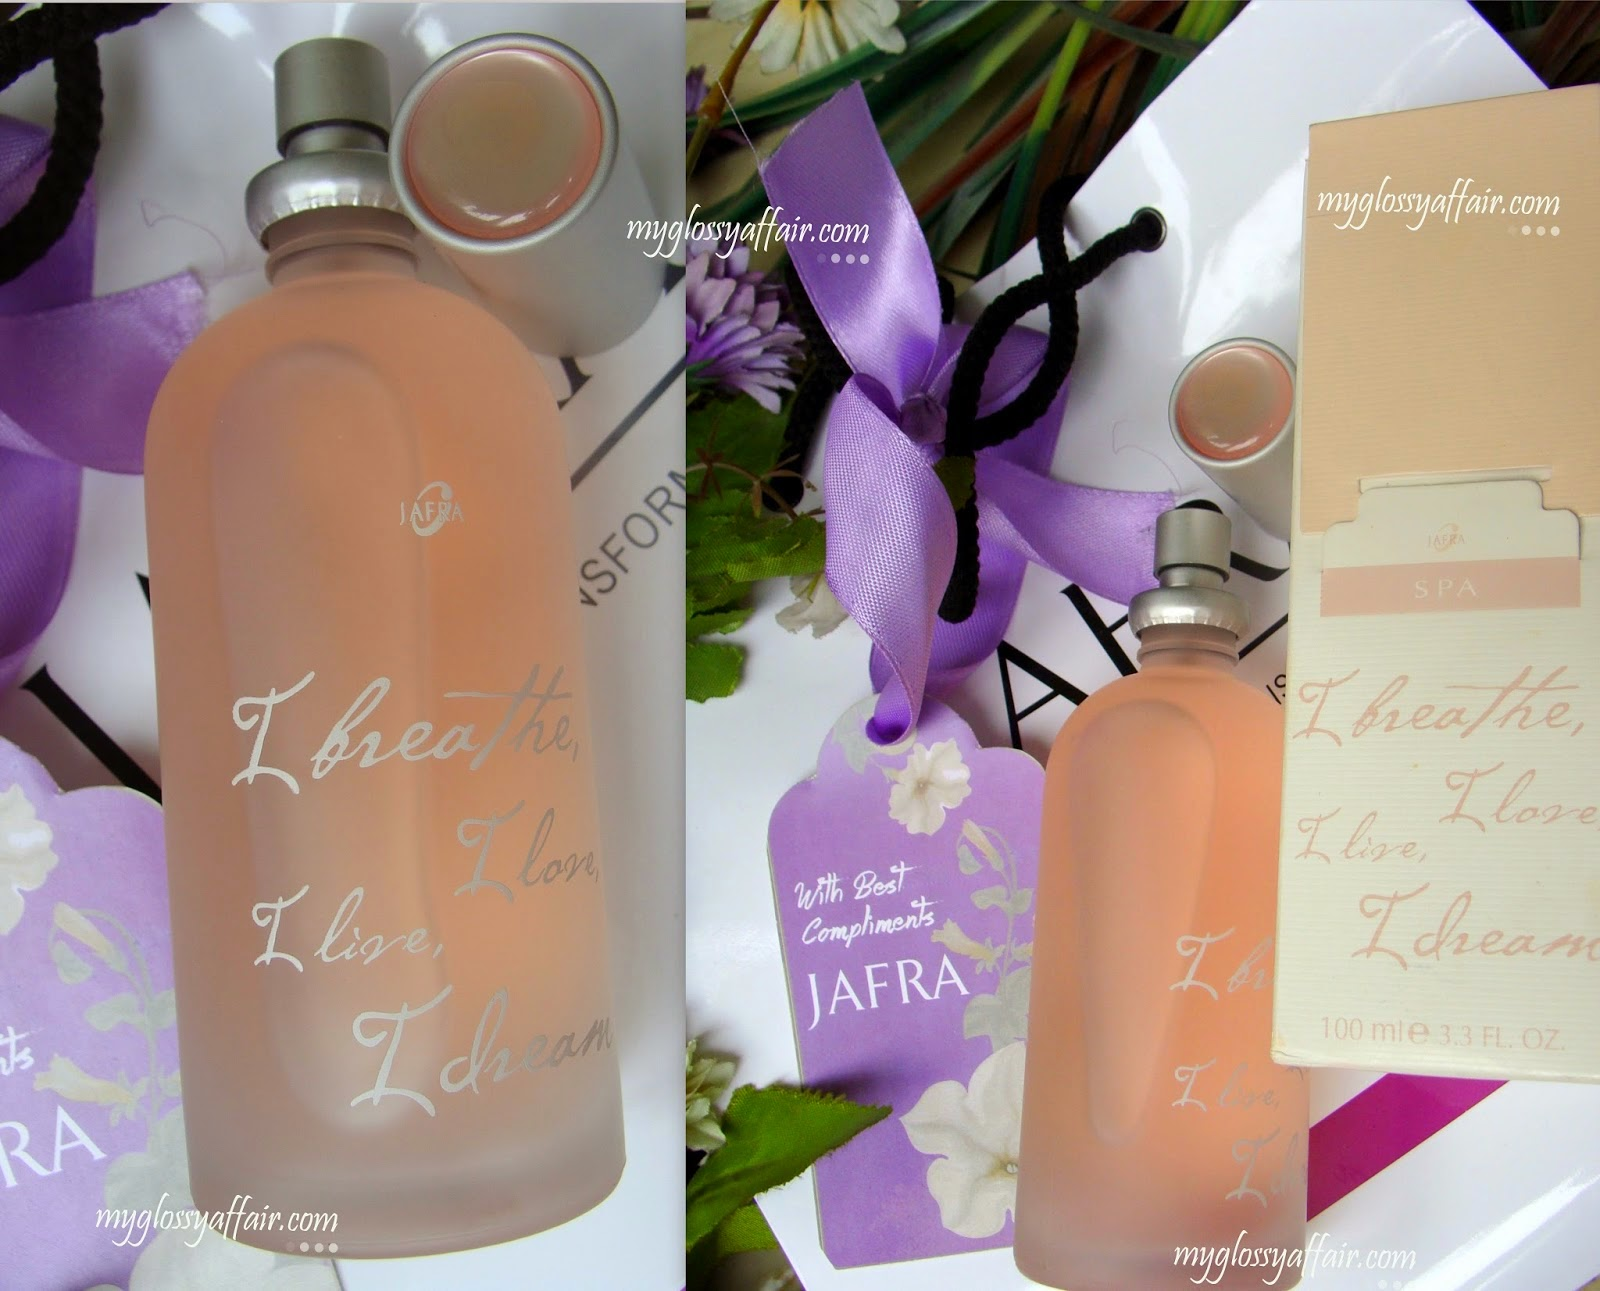 Jafra Fragrance